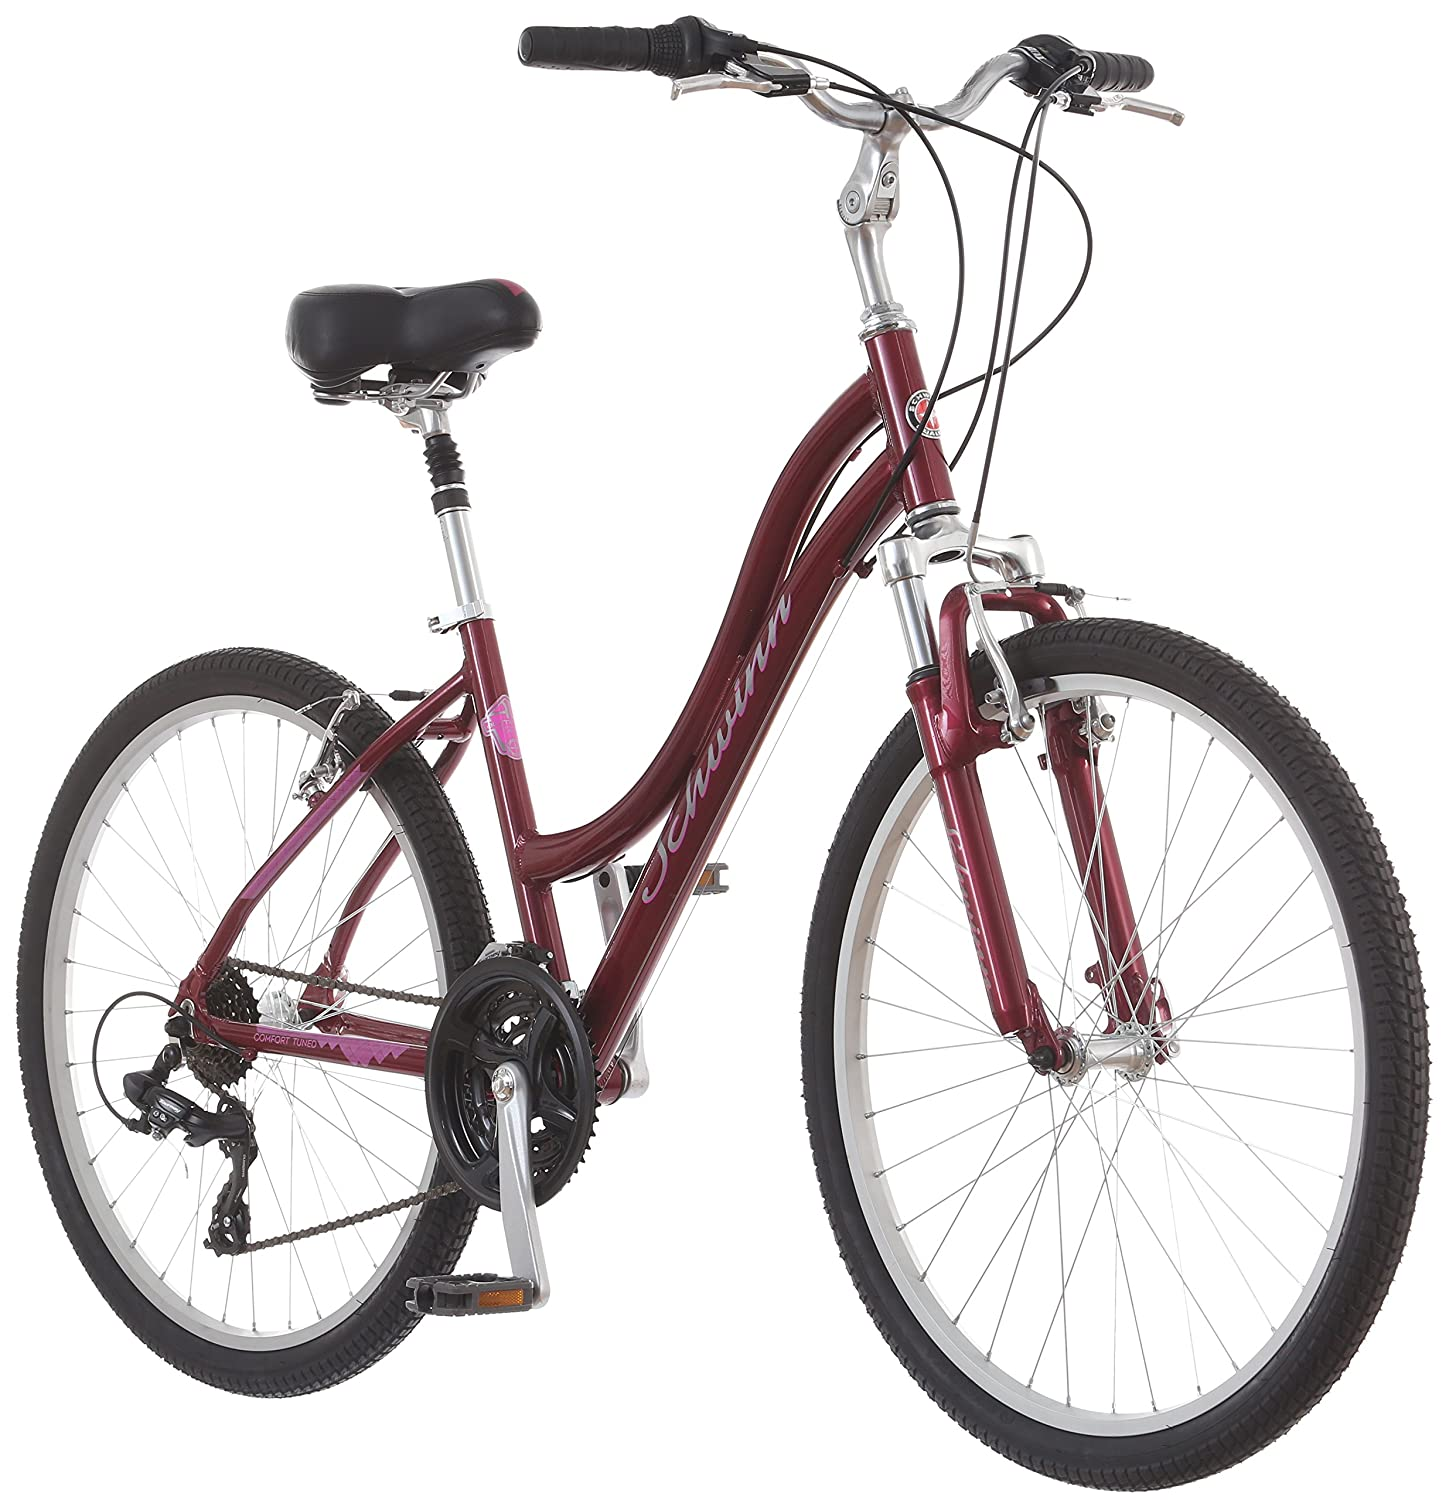 products bike comforter path bicycles windsor save off up silver rover dover to comfort bikes htm